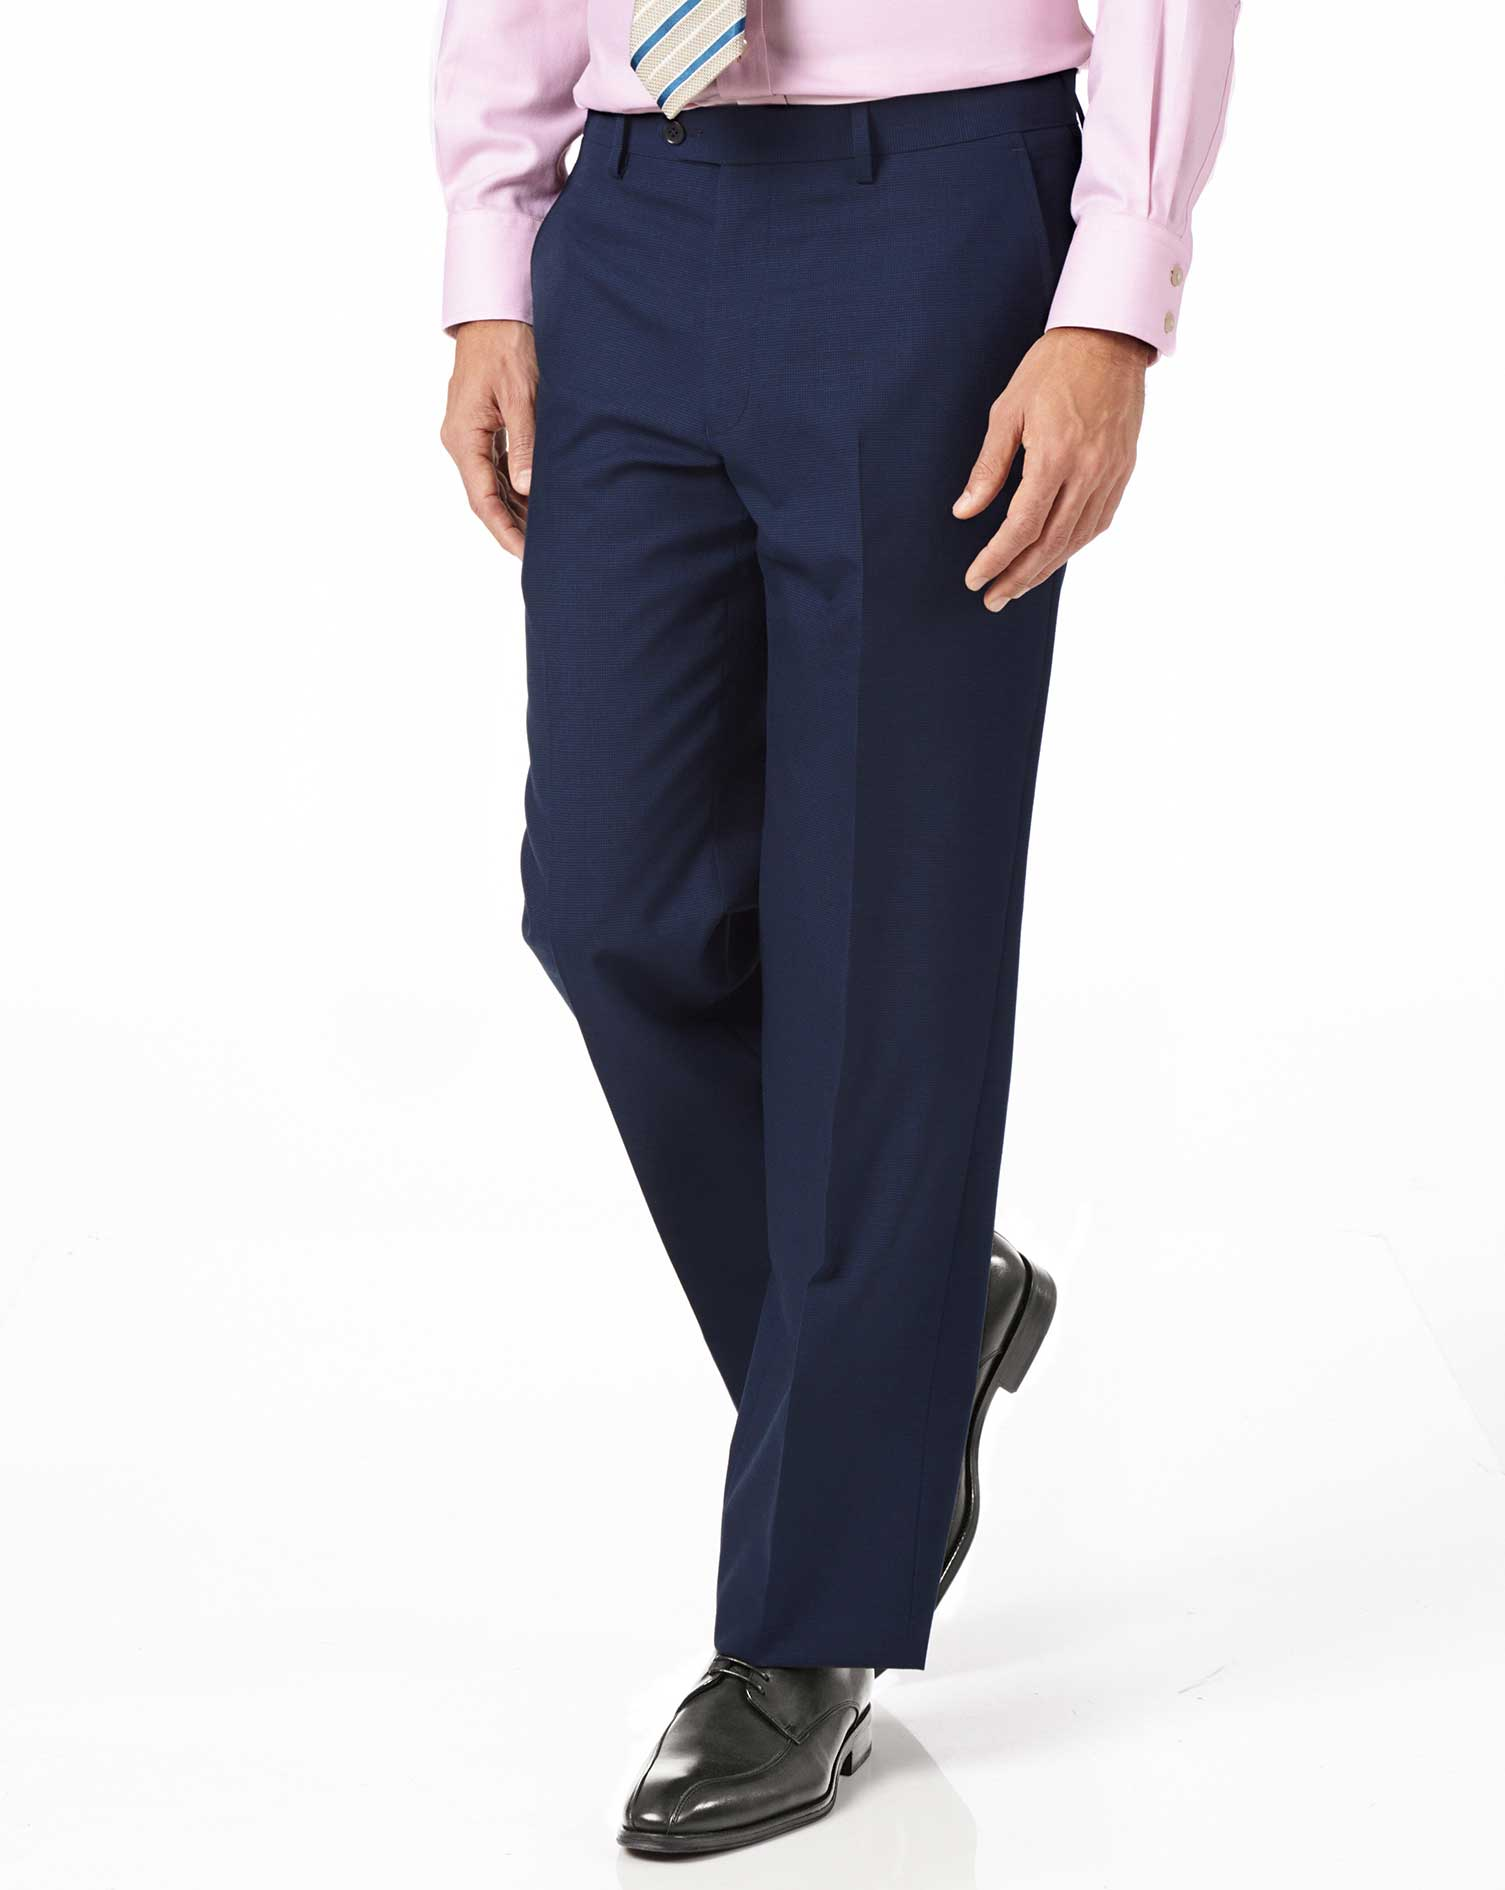 Indigo Blue Classic Fit Panama Puppytooth Business Suit Trouser Size W42 L34 by Charles Tyrwhitt